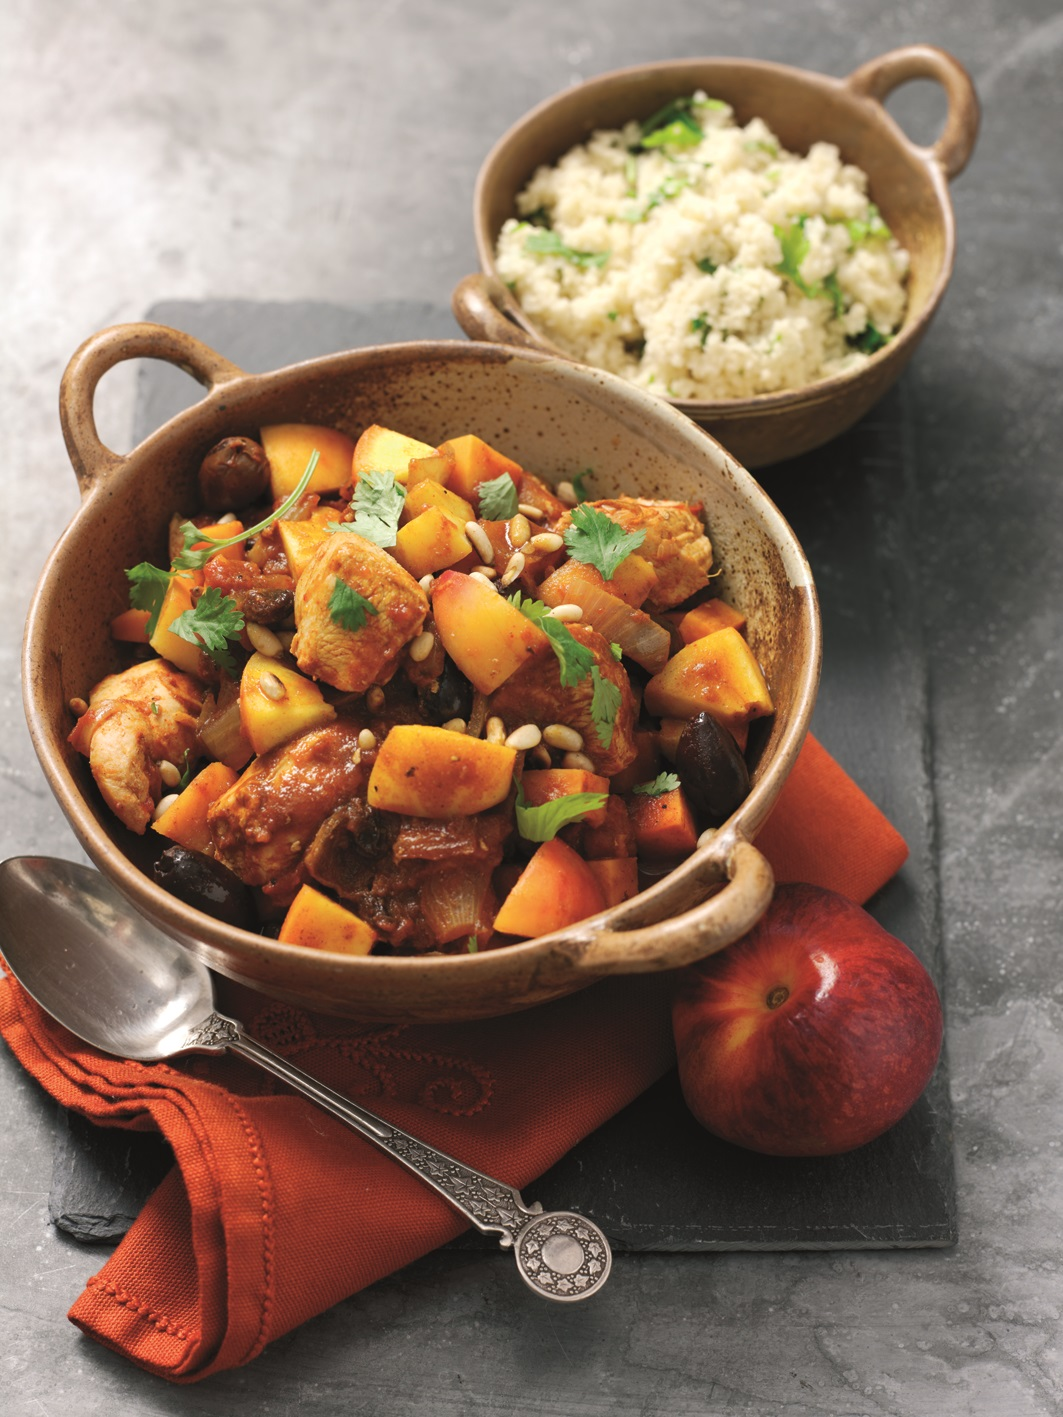 African Peach And Chicken Tagine Recipe To Try Out